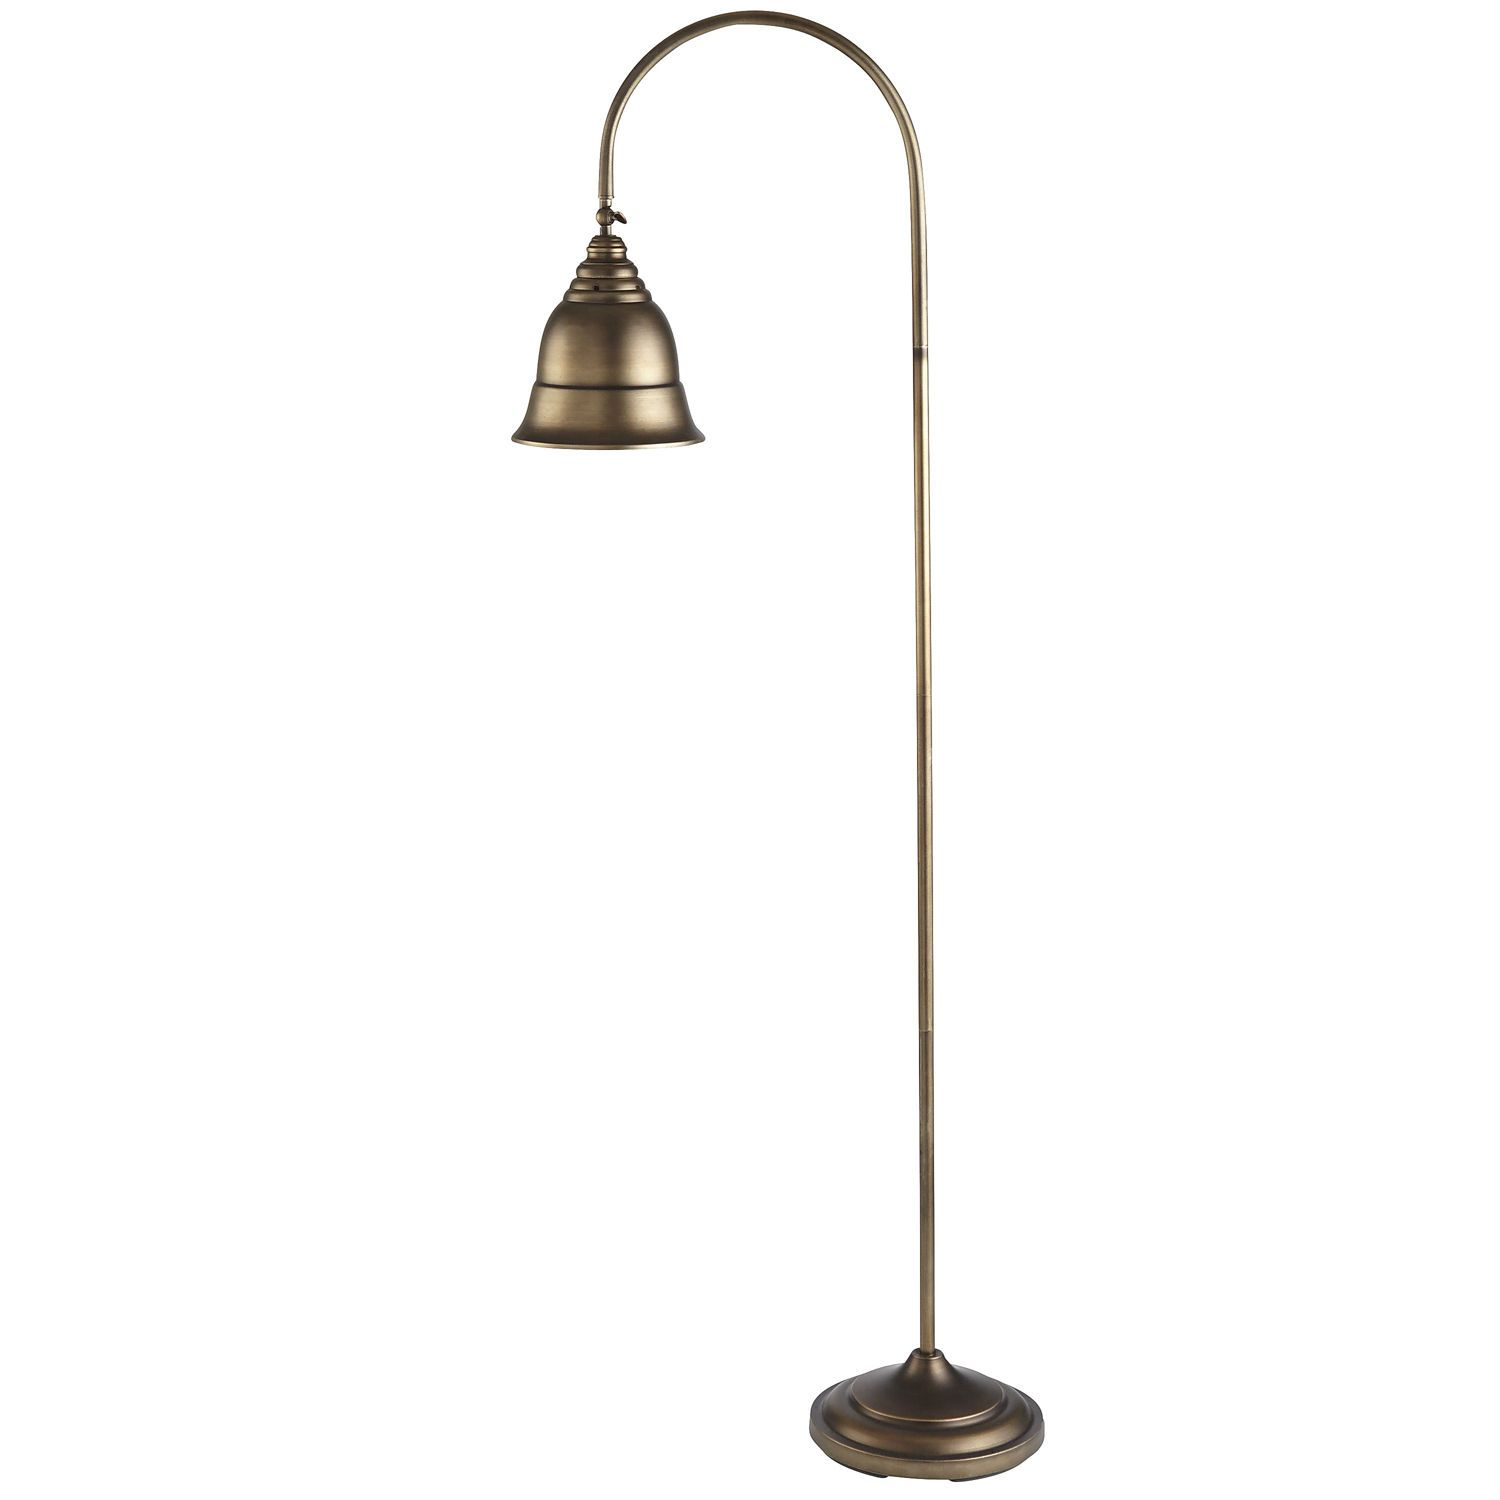 Pier 1 Floor Lamps Alluring Industrial Floor Lamp  Bronze  Pier 1 Imports  $89  Nest Review